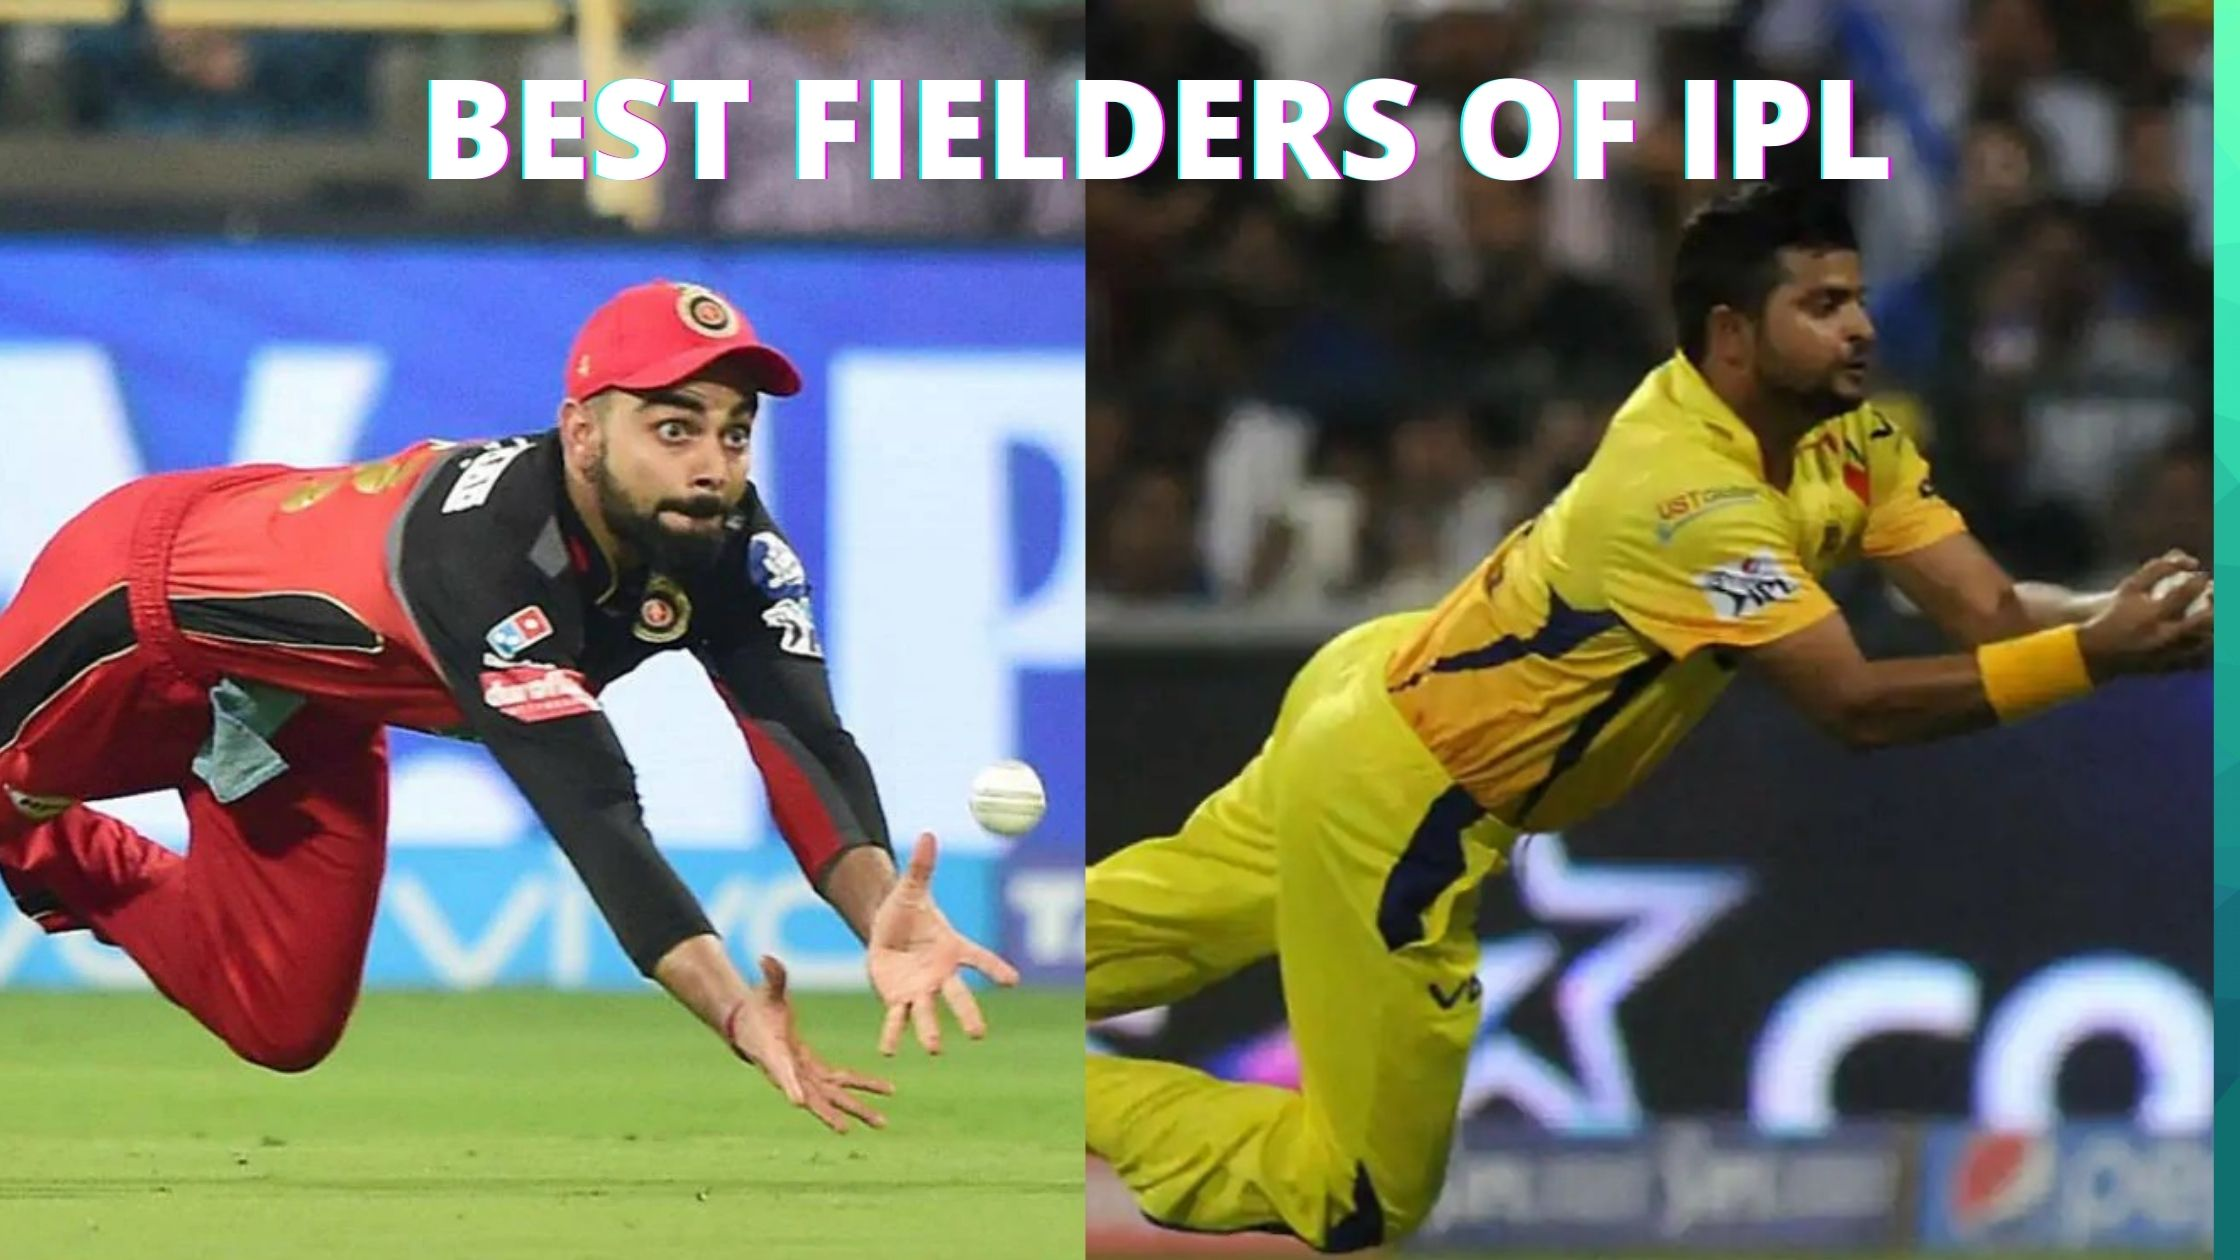 Best-fielders-of-IPL-2020.